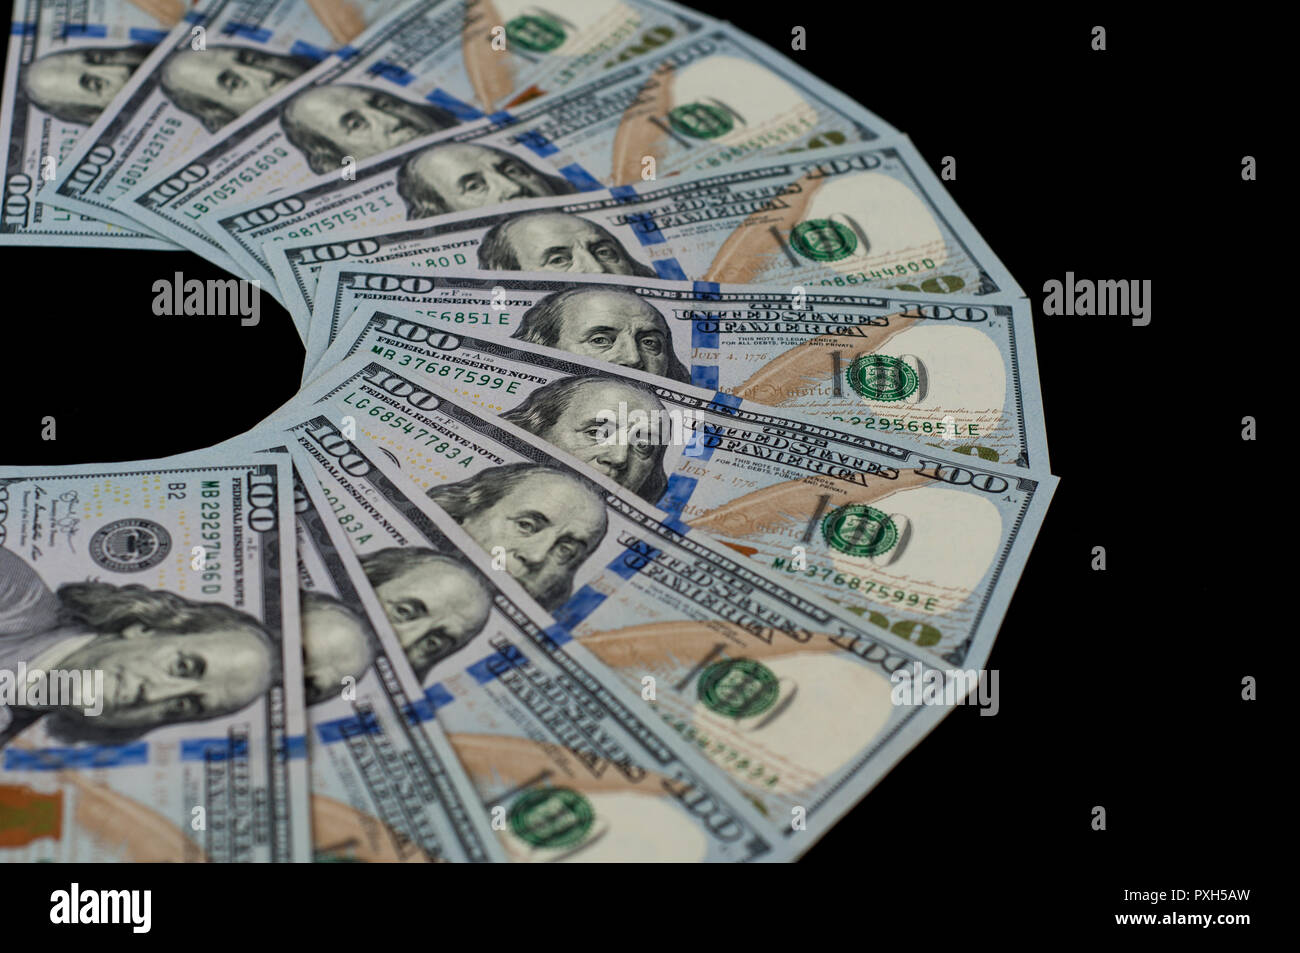 One hundred dollar bills are fanned out on a black background. - Stock Image